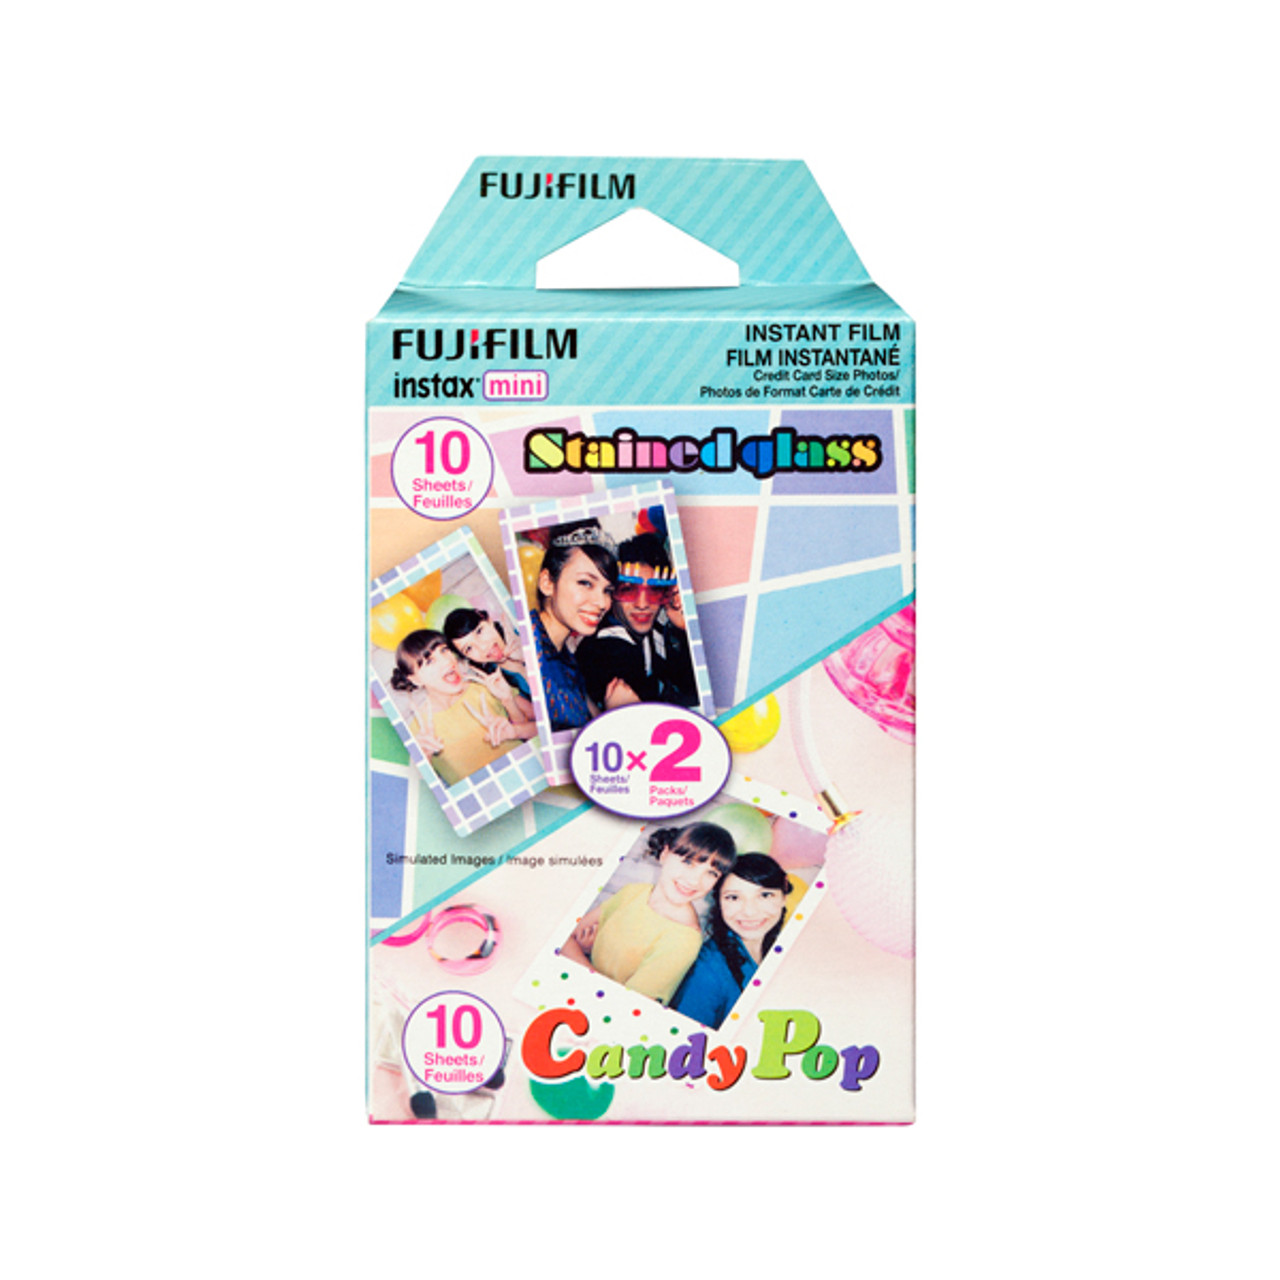 Fujifilm Instax Mini Film Party Pack StainedGlass & CandyPop (20 Exposures)